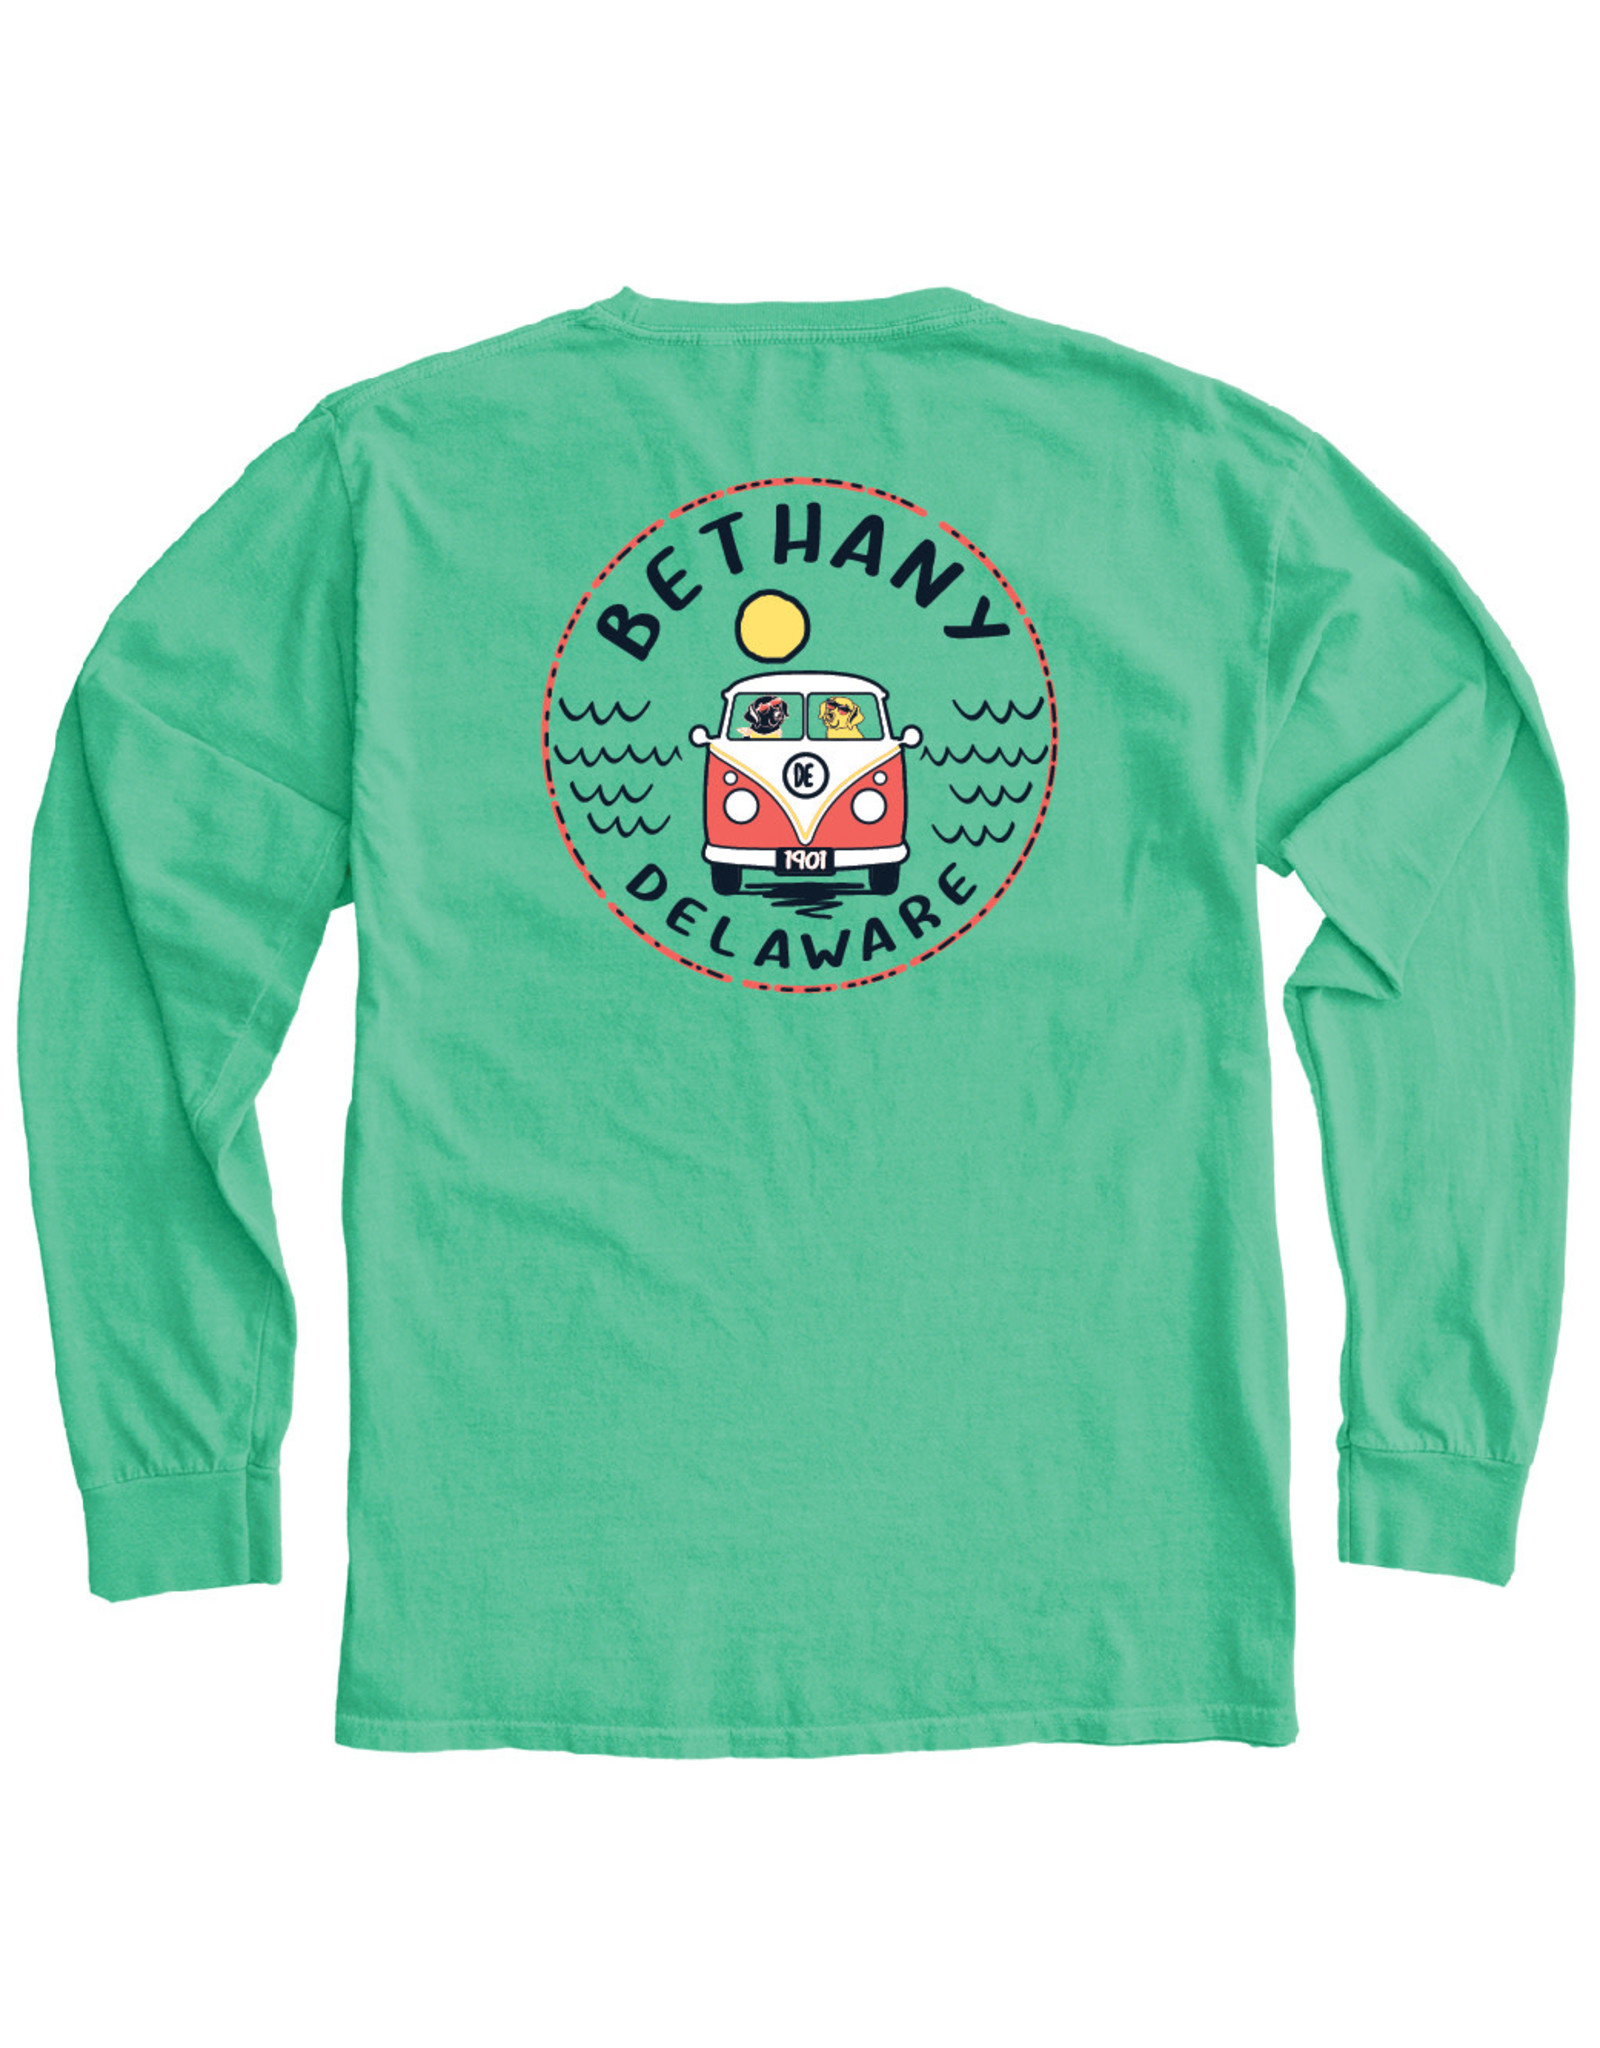 BLUE 84 BETHANY CONCURRENCE BUS/DOGS LS TEE